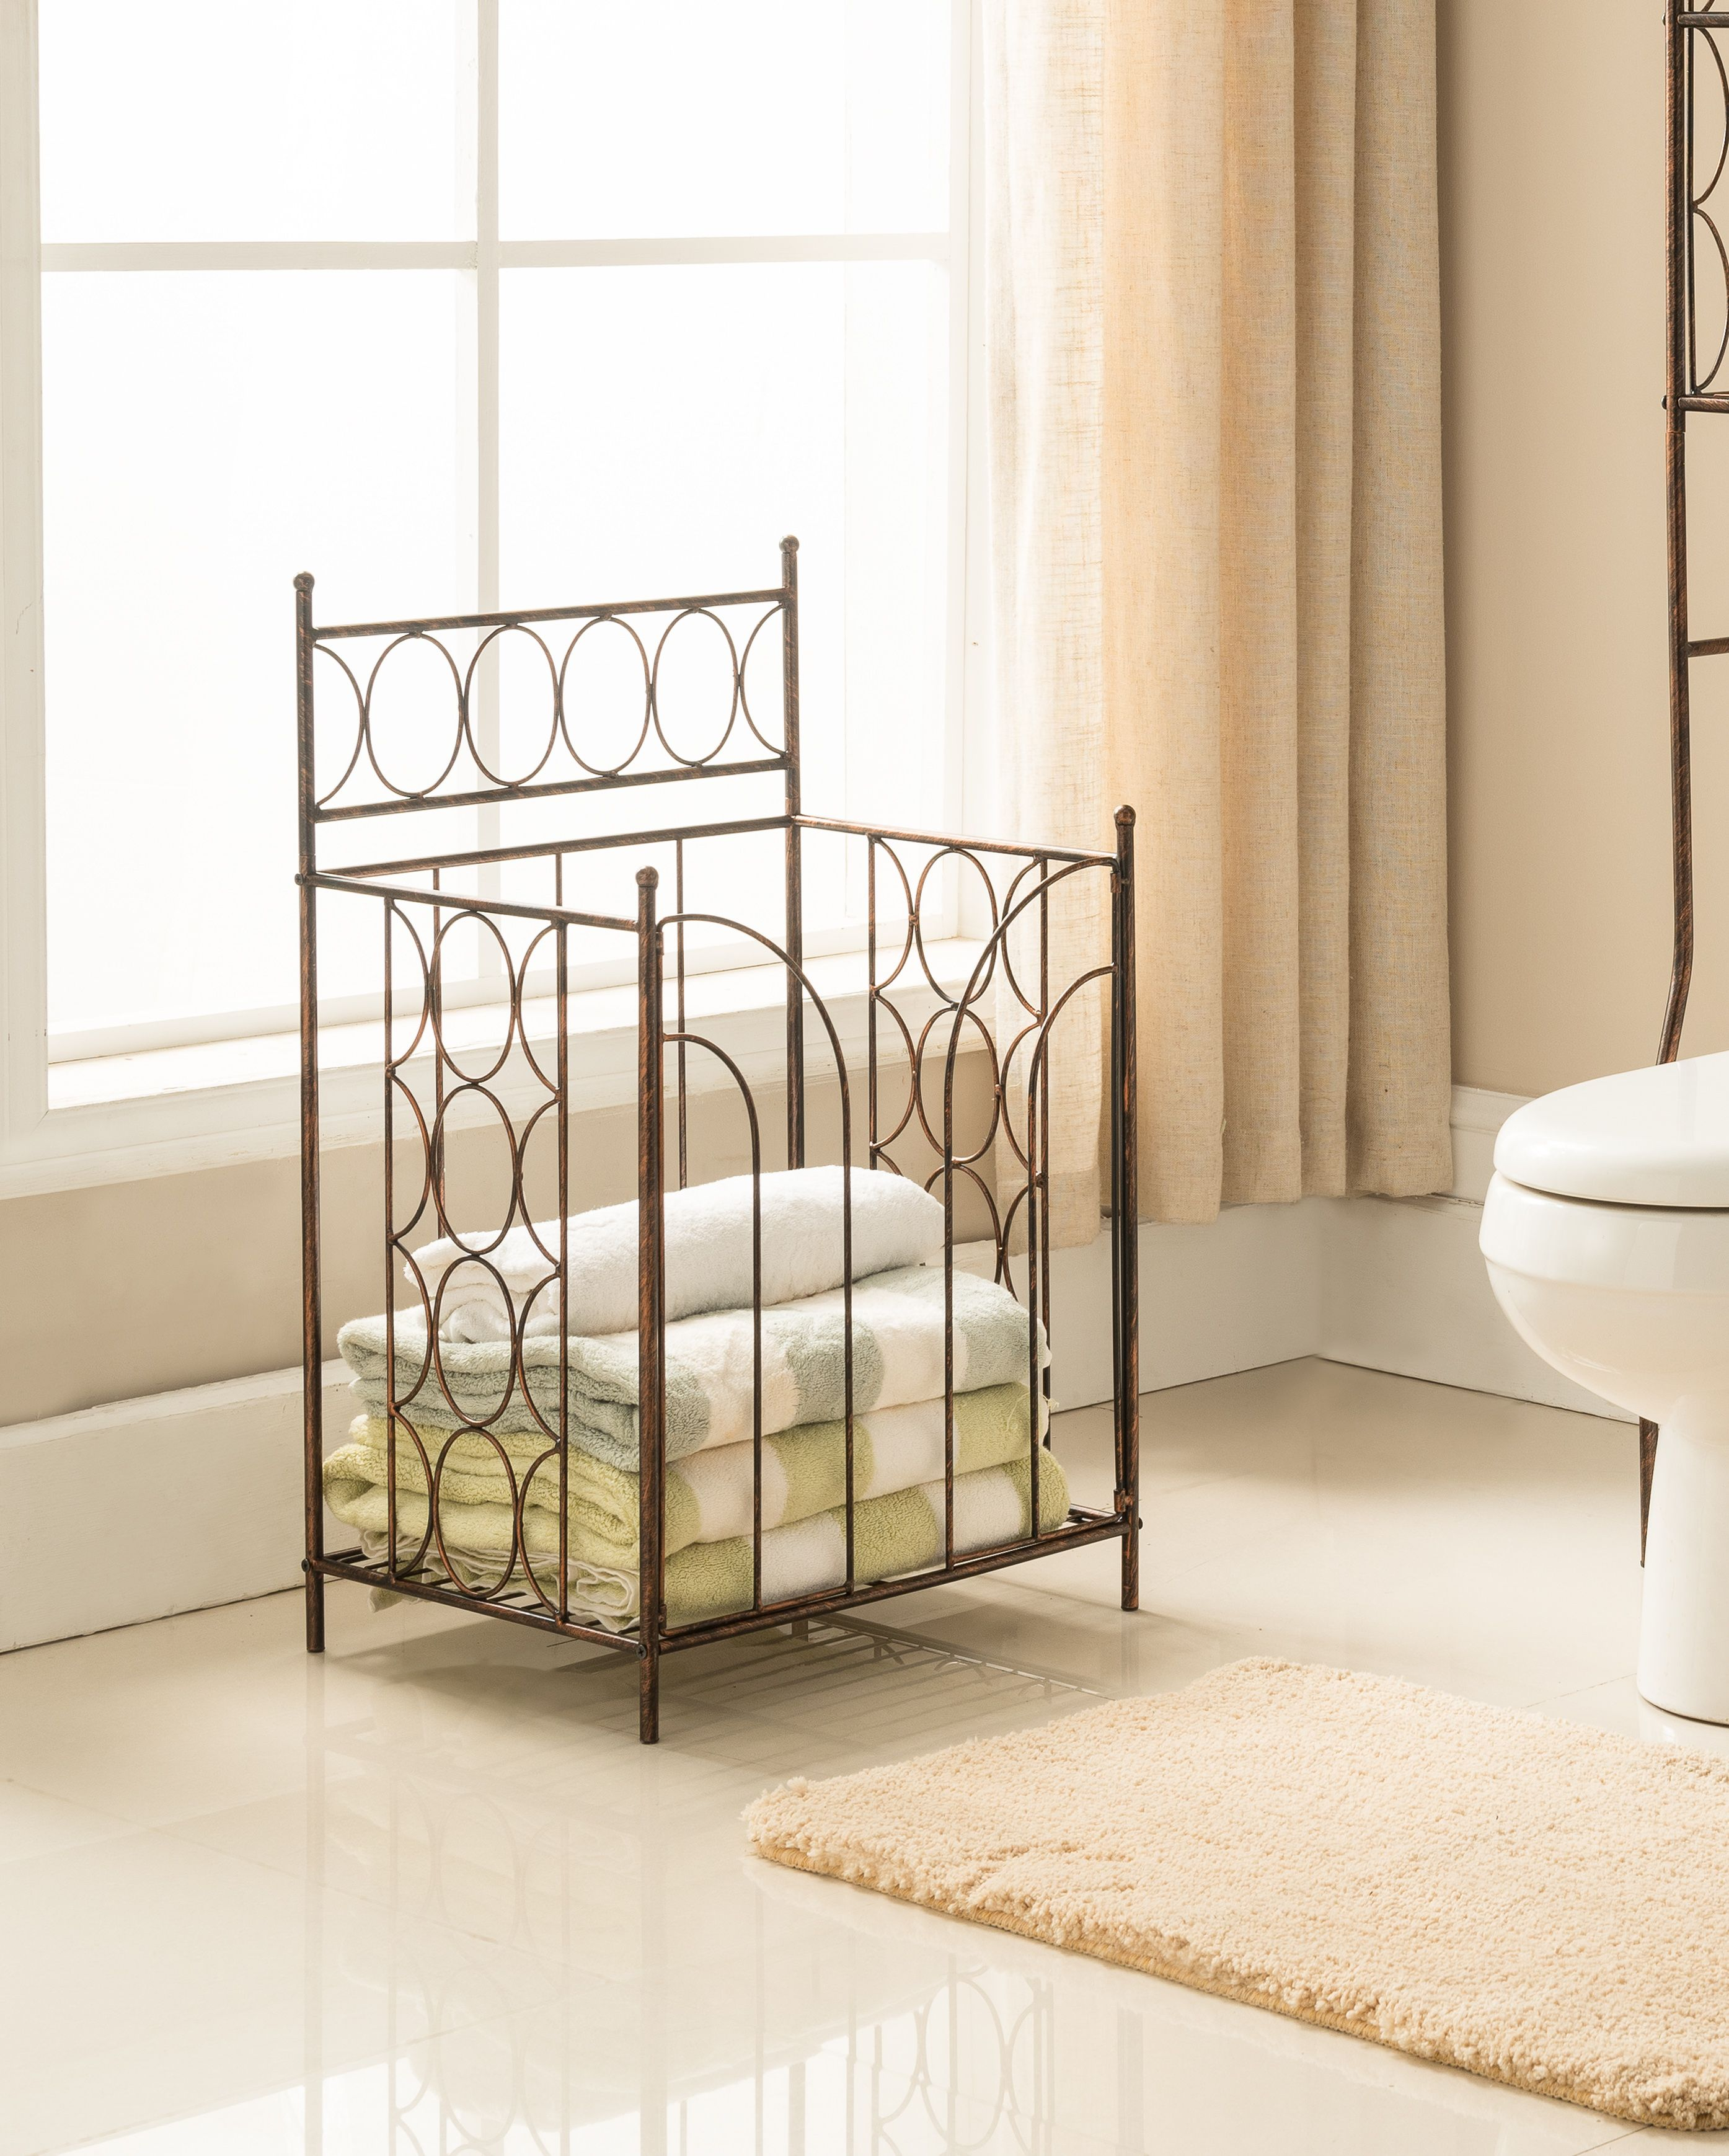 bathroom racks for towels | My Web Value